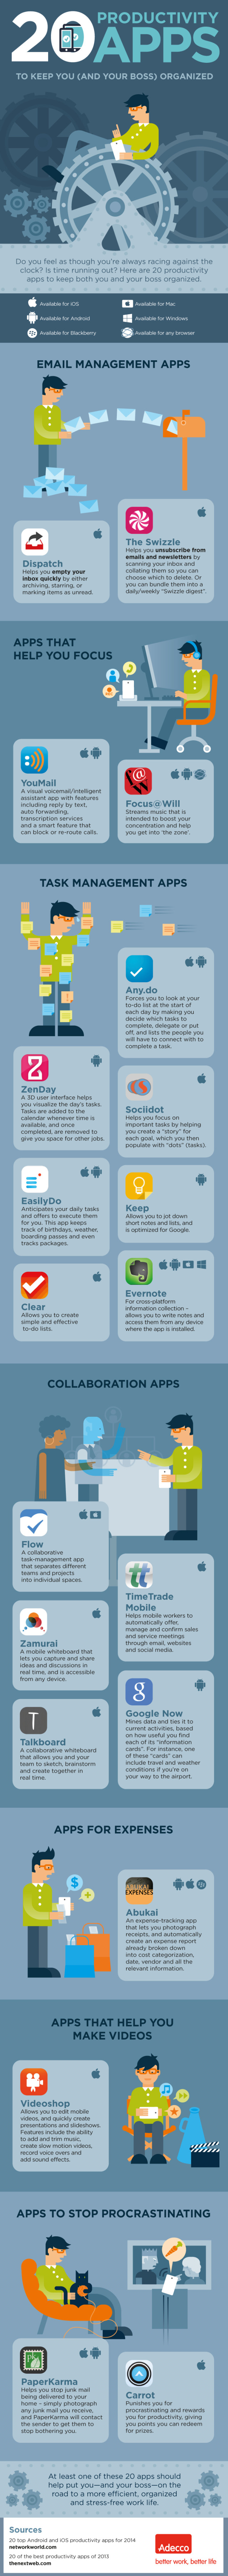 20 Apps To Keep Students Productive